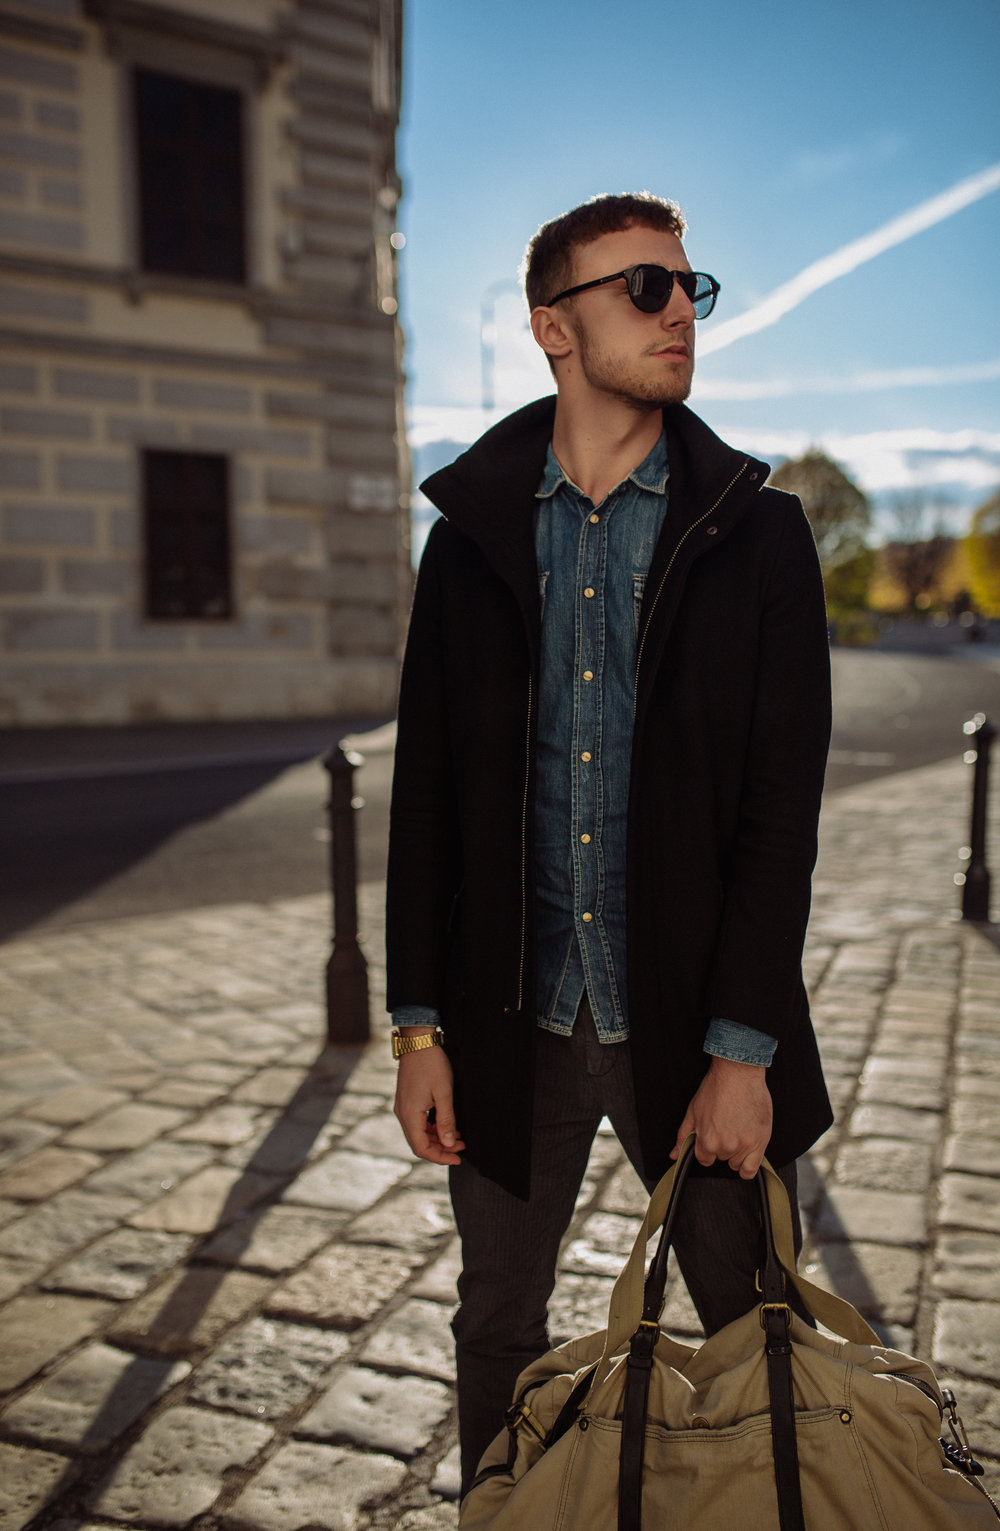 OUTFIT:    Coat - ZARA    Shirt - GUESS    Trousers - SCOTCH&SODA    Boots - LEVI`S    Bag - DIESEL    Shades - HAWKERS    Watch - CASIO       Photography:  Sonja Petrkowsky